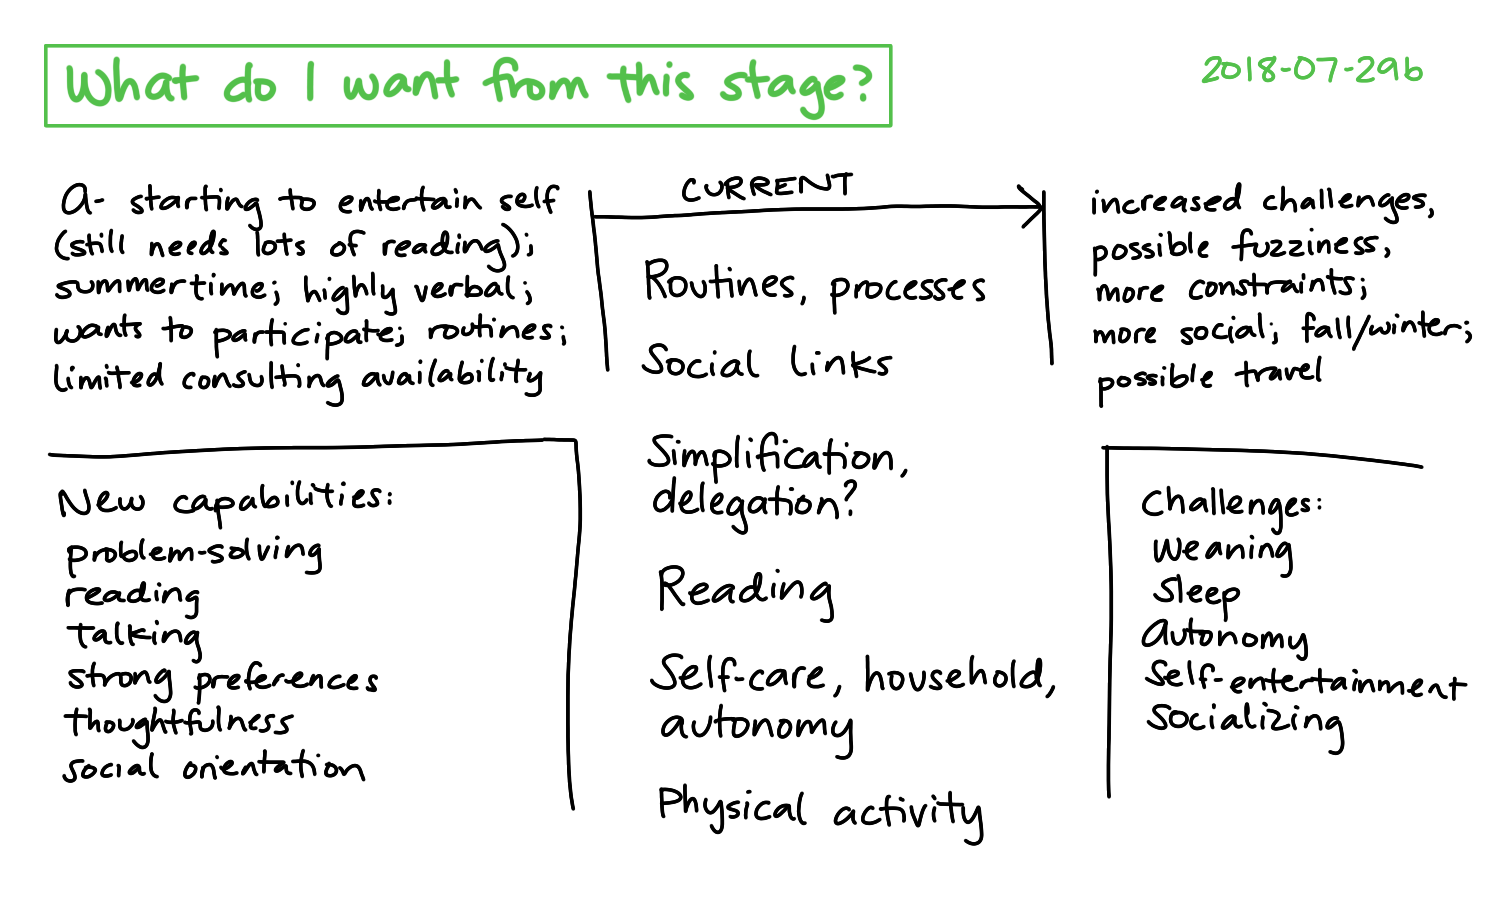 2018-07-29b What do I want from this stage #parenting #planning.png